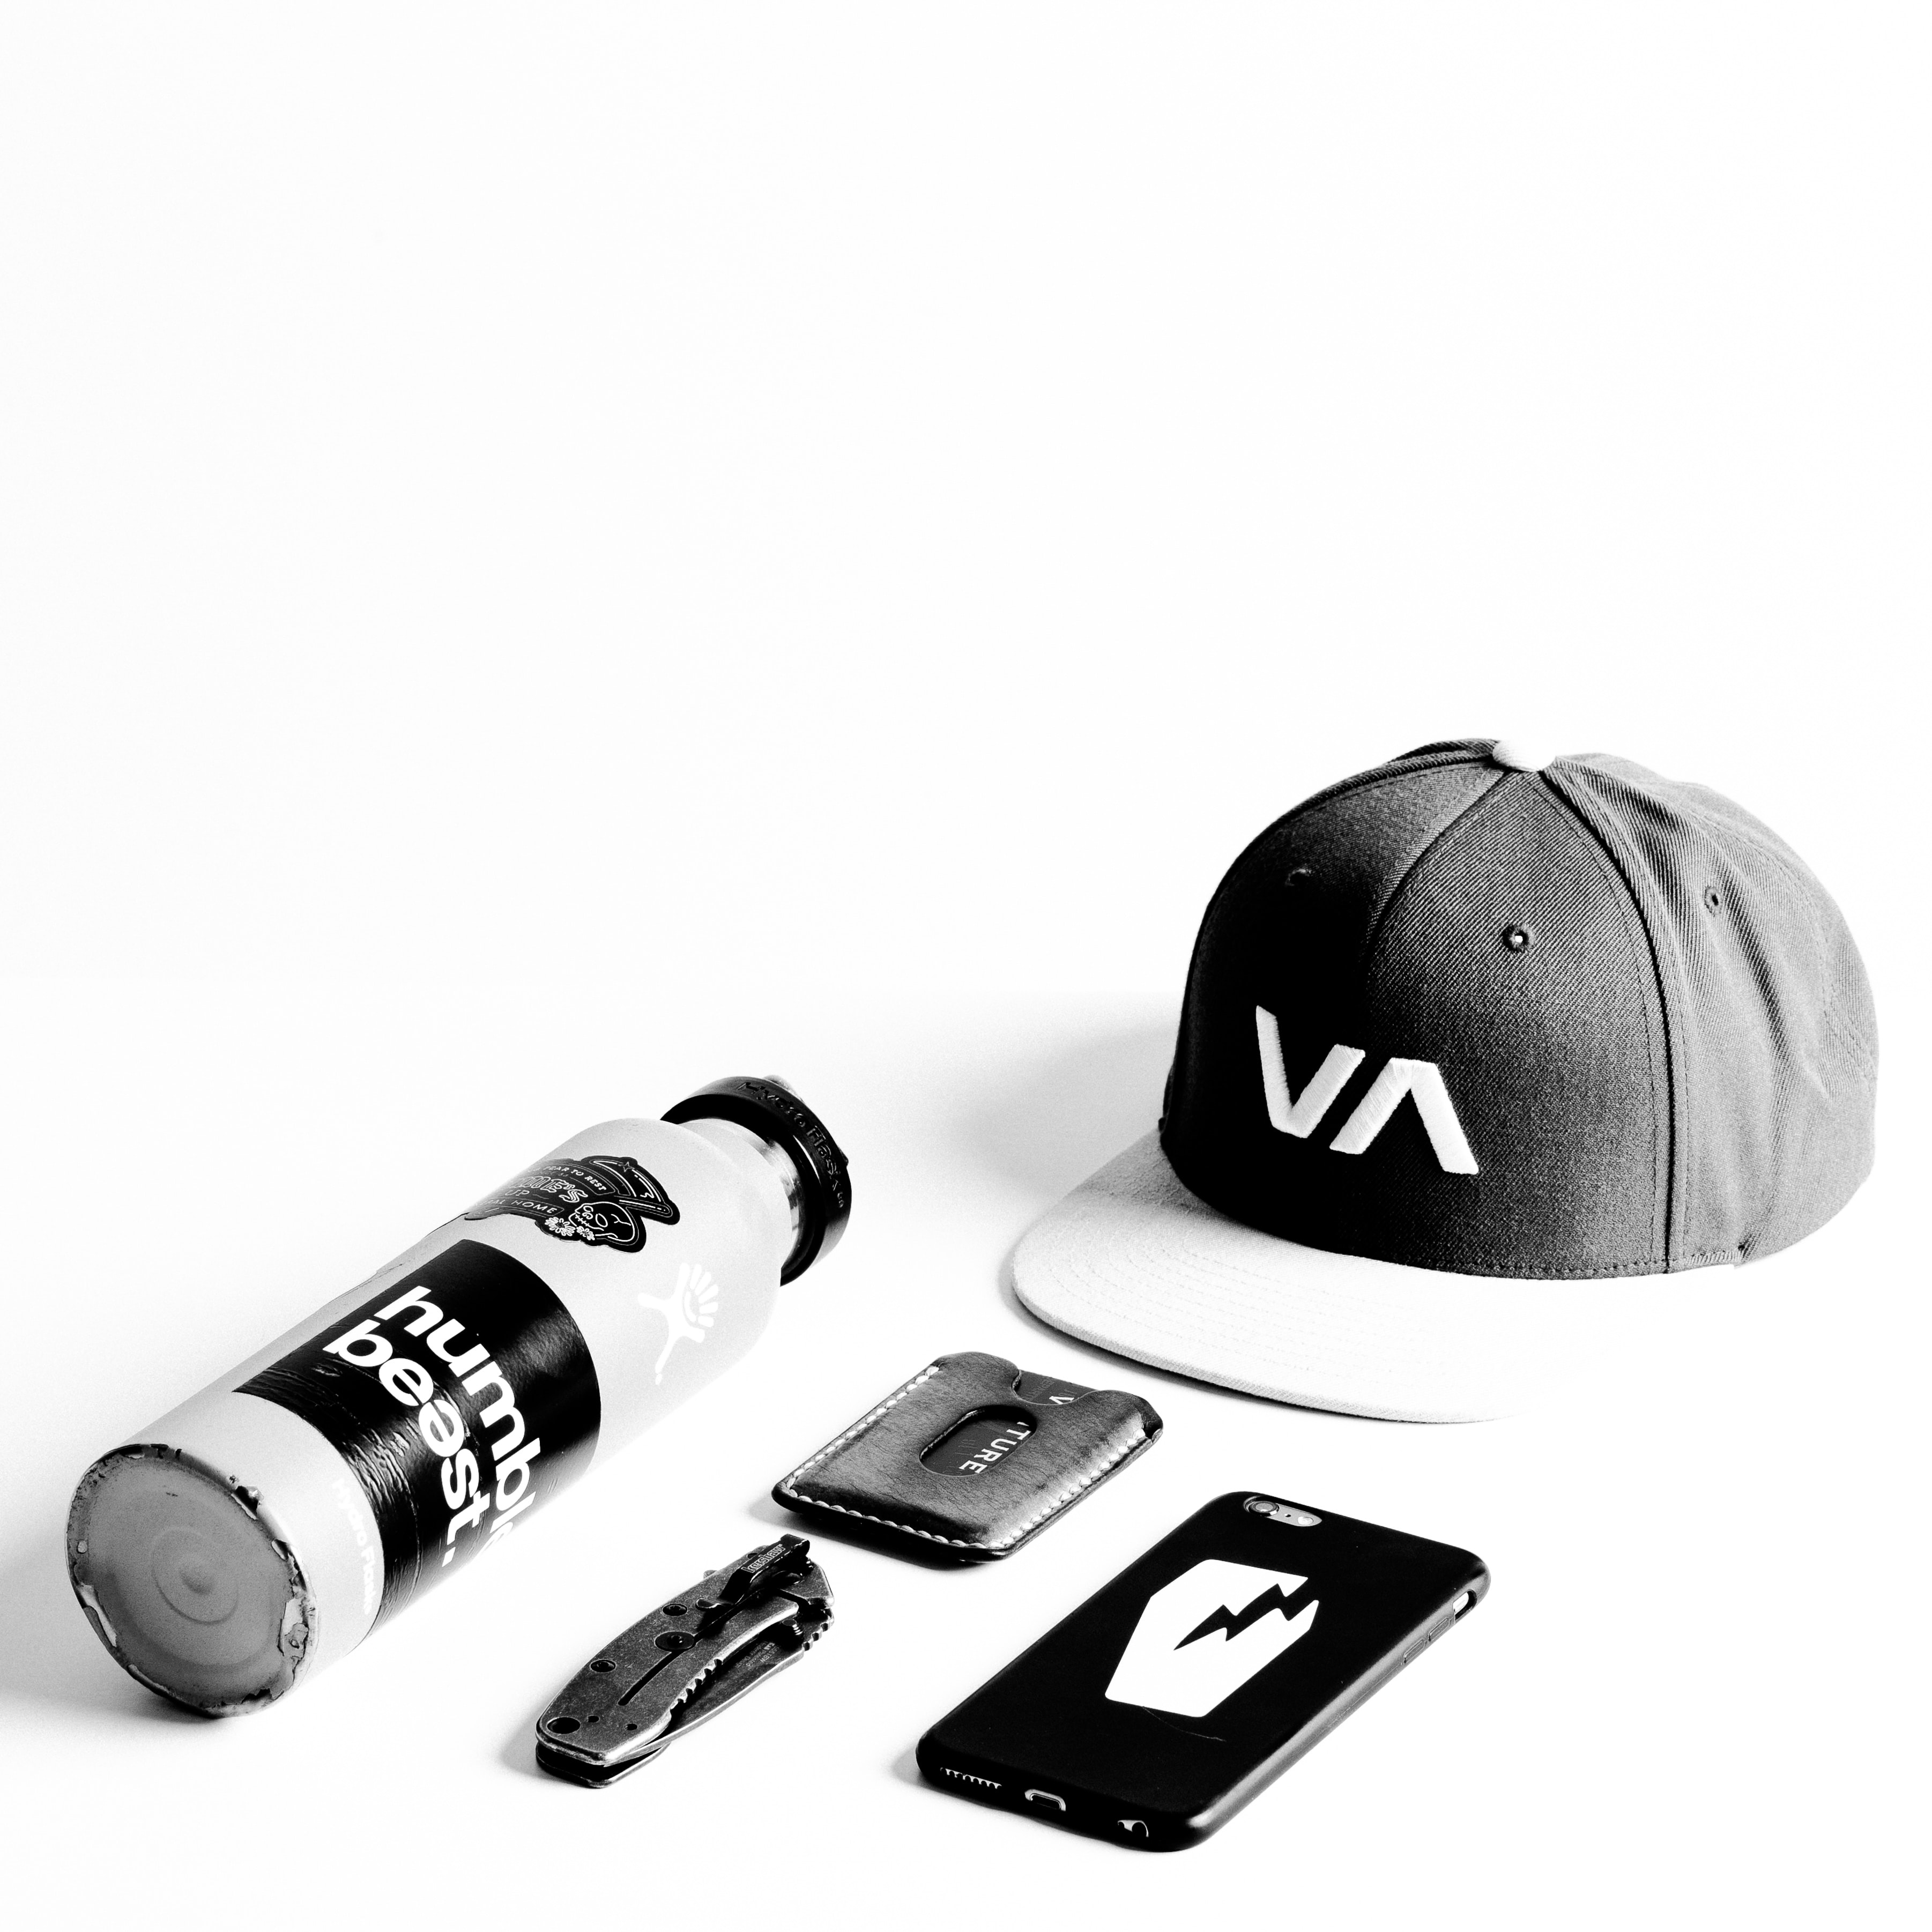 grayscale photo of smartphone and cap